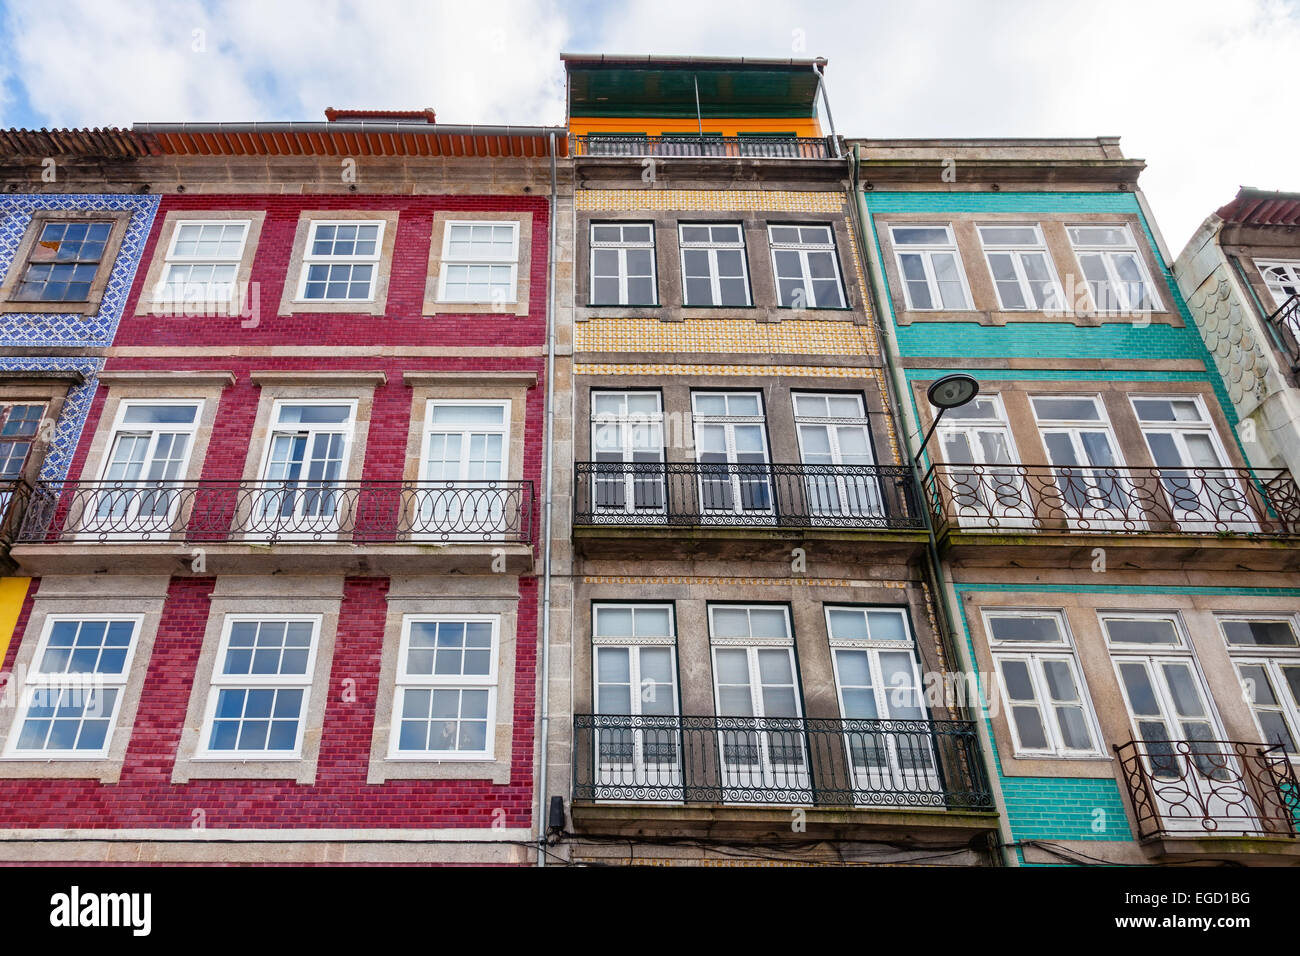 The typical old colorful buildings of the city of Porto in Portugal. Unesco World Heritage Site. - Stock Image